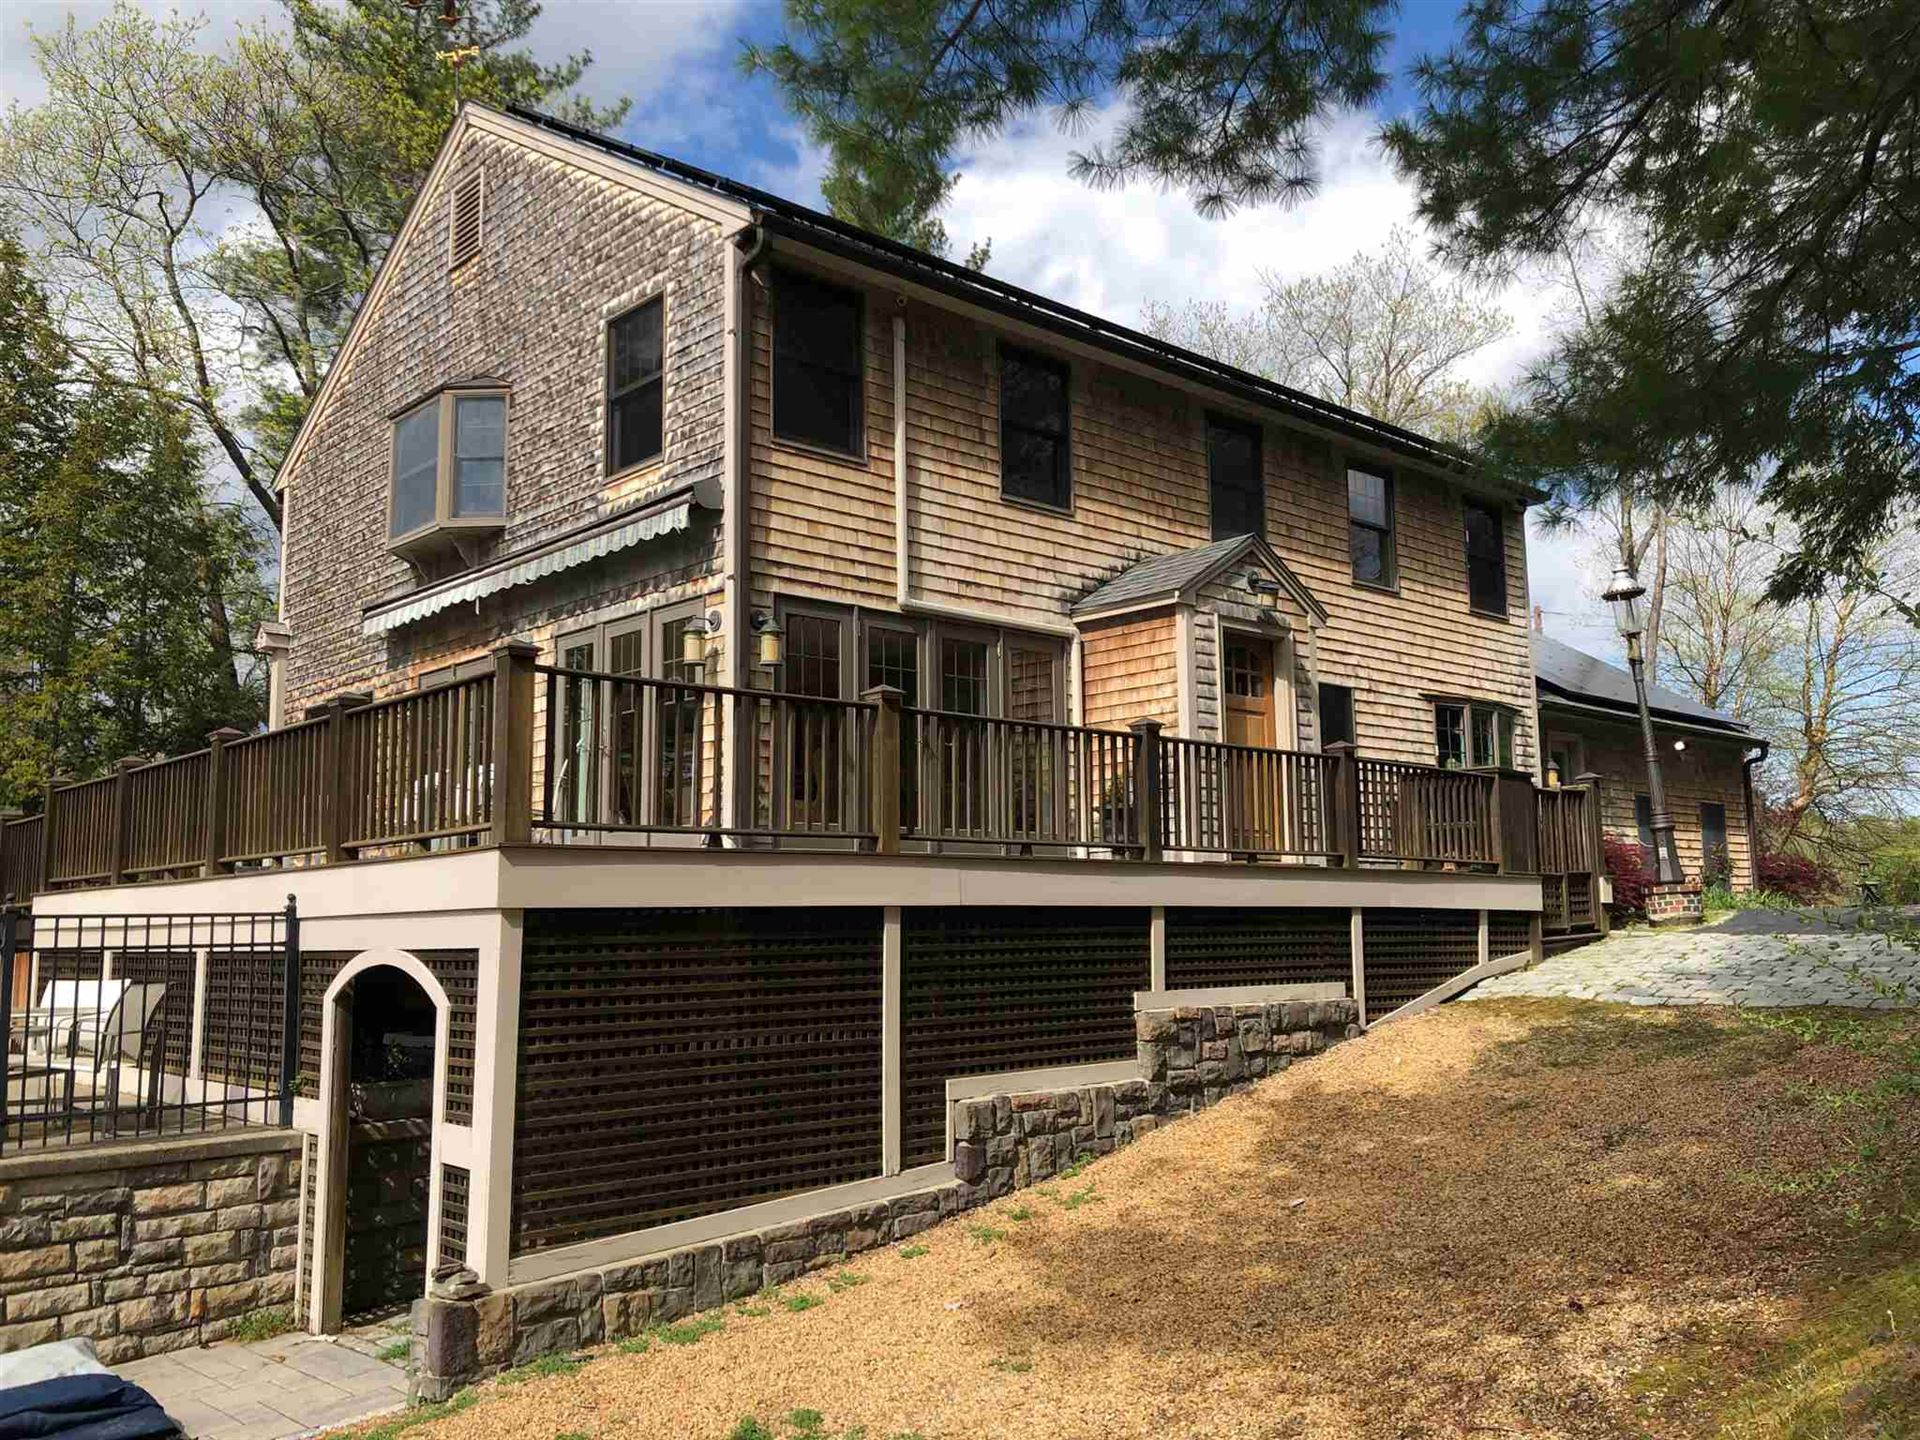 21 Moody Point Drive, Newmarket, NH 03857 - MLS#: 4805826